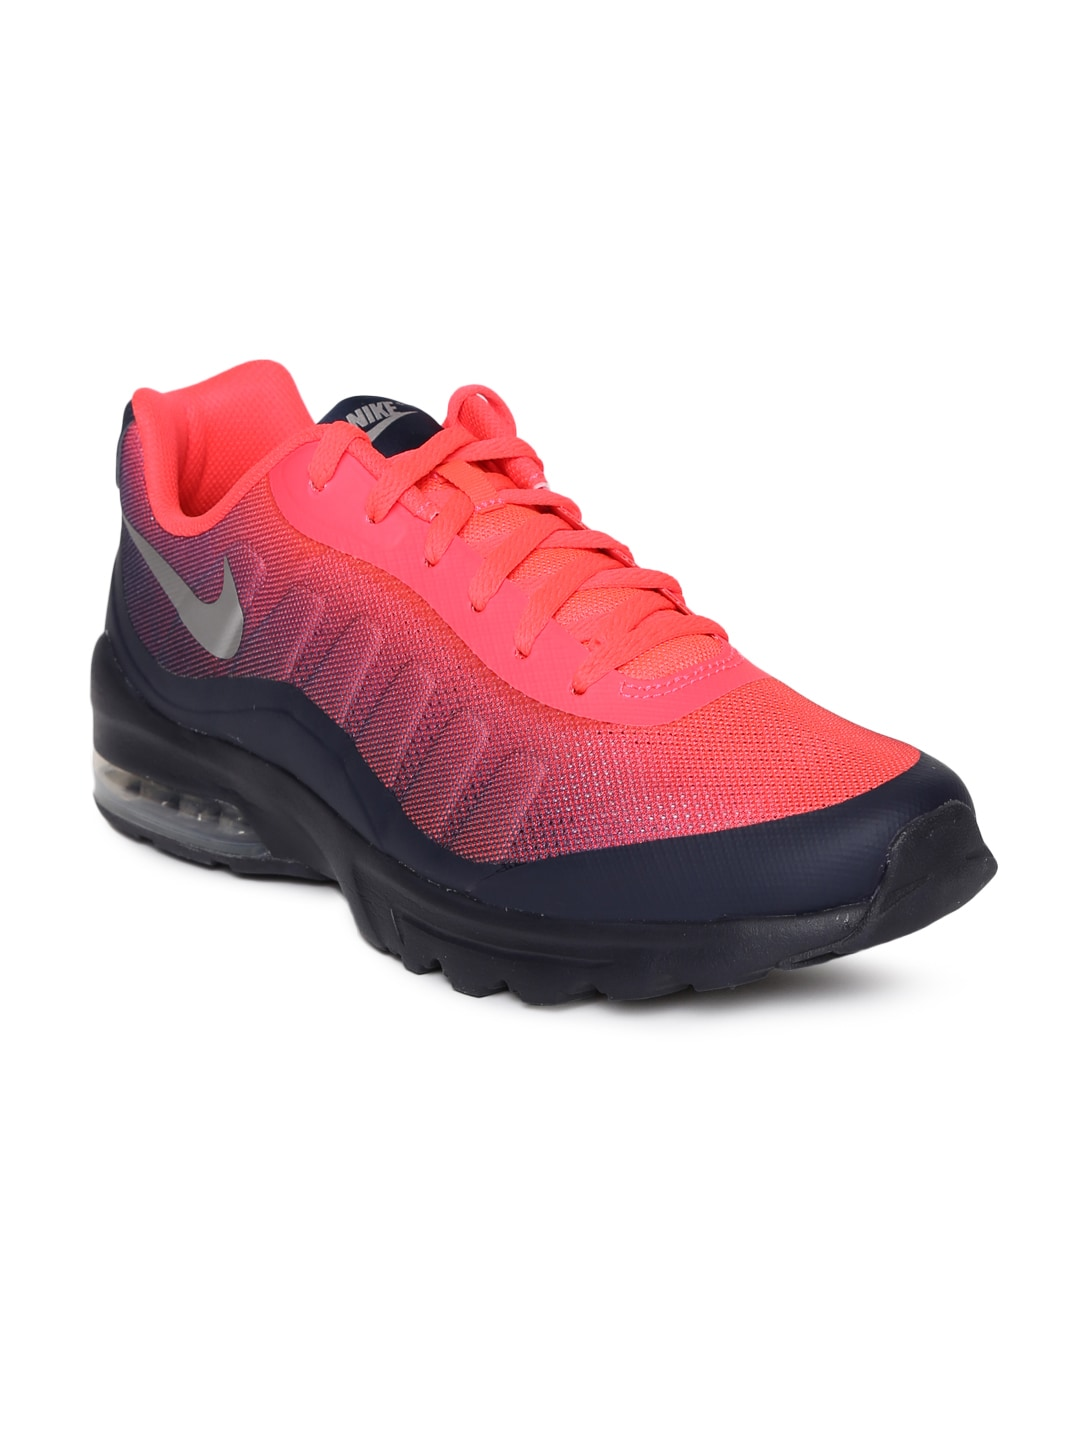 size 40 95fa2 c4216 Nike - Shop for Nike Apparels Online in India   Myntra